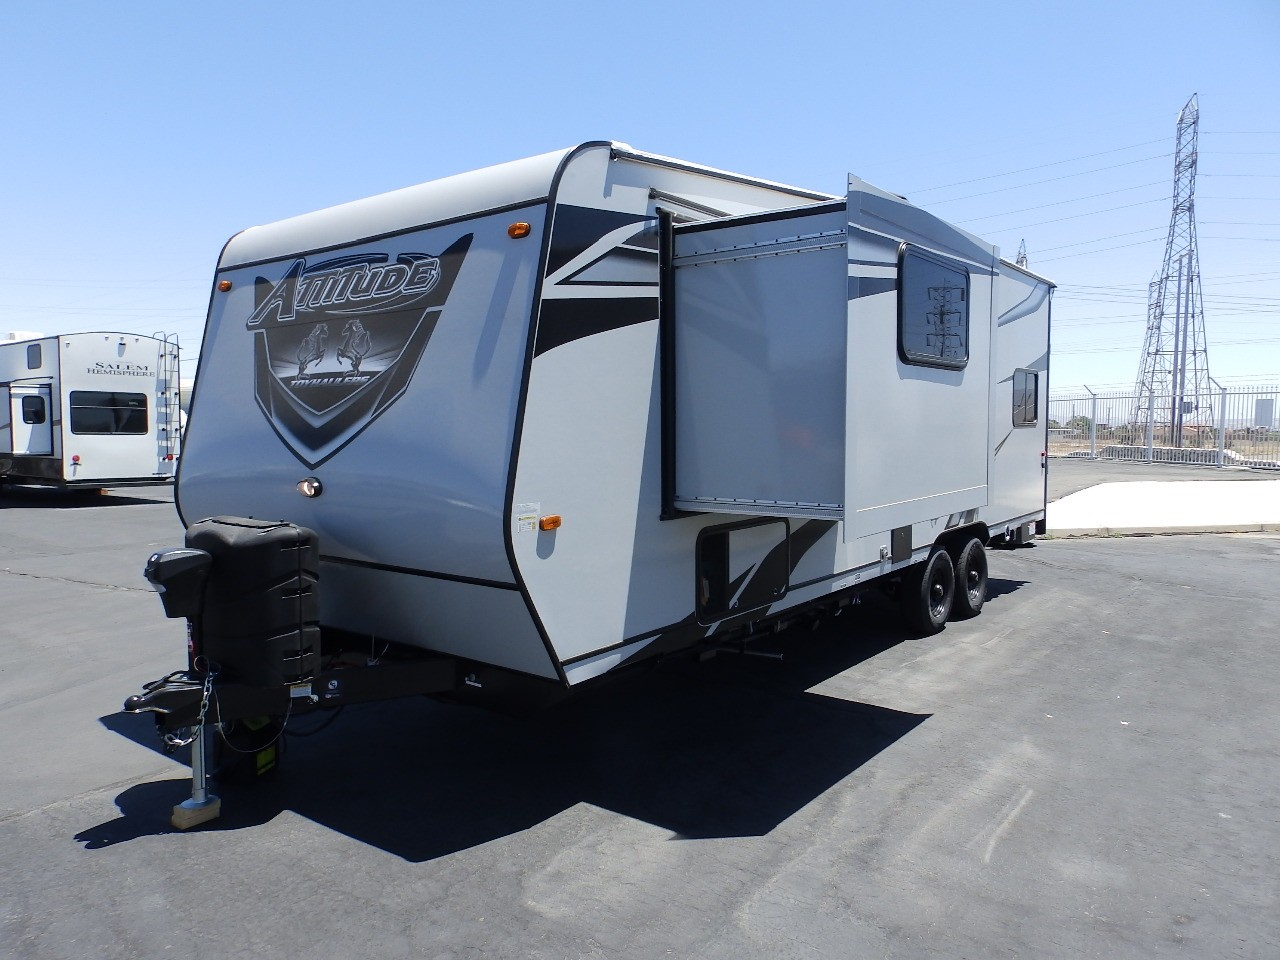 New, 2022, Eclipse, ATTITUDE 2414BSG, 1 SLIDE, FRONT PRIVATE BEDROOM, REAR ELECTRIC DINETTE, ONAN 4000, 330 WATT SOLAR, POWER AWNING, INVERTER, Toy Haulers